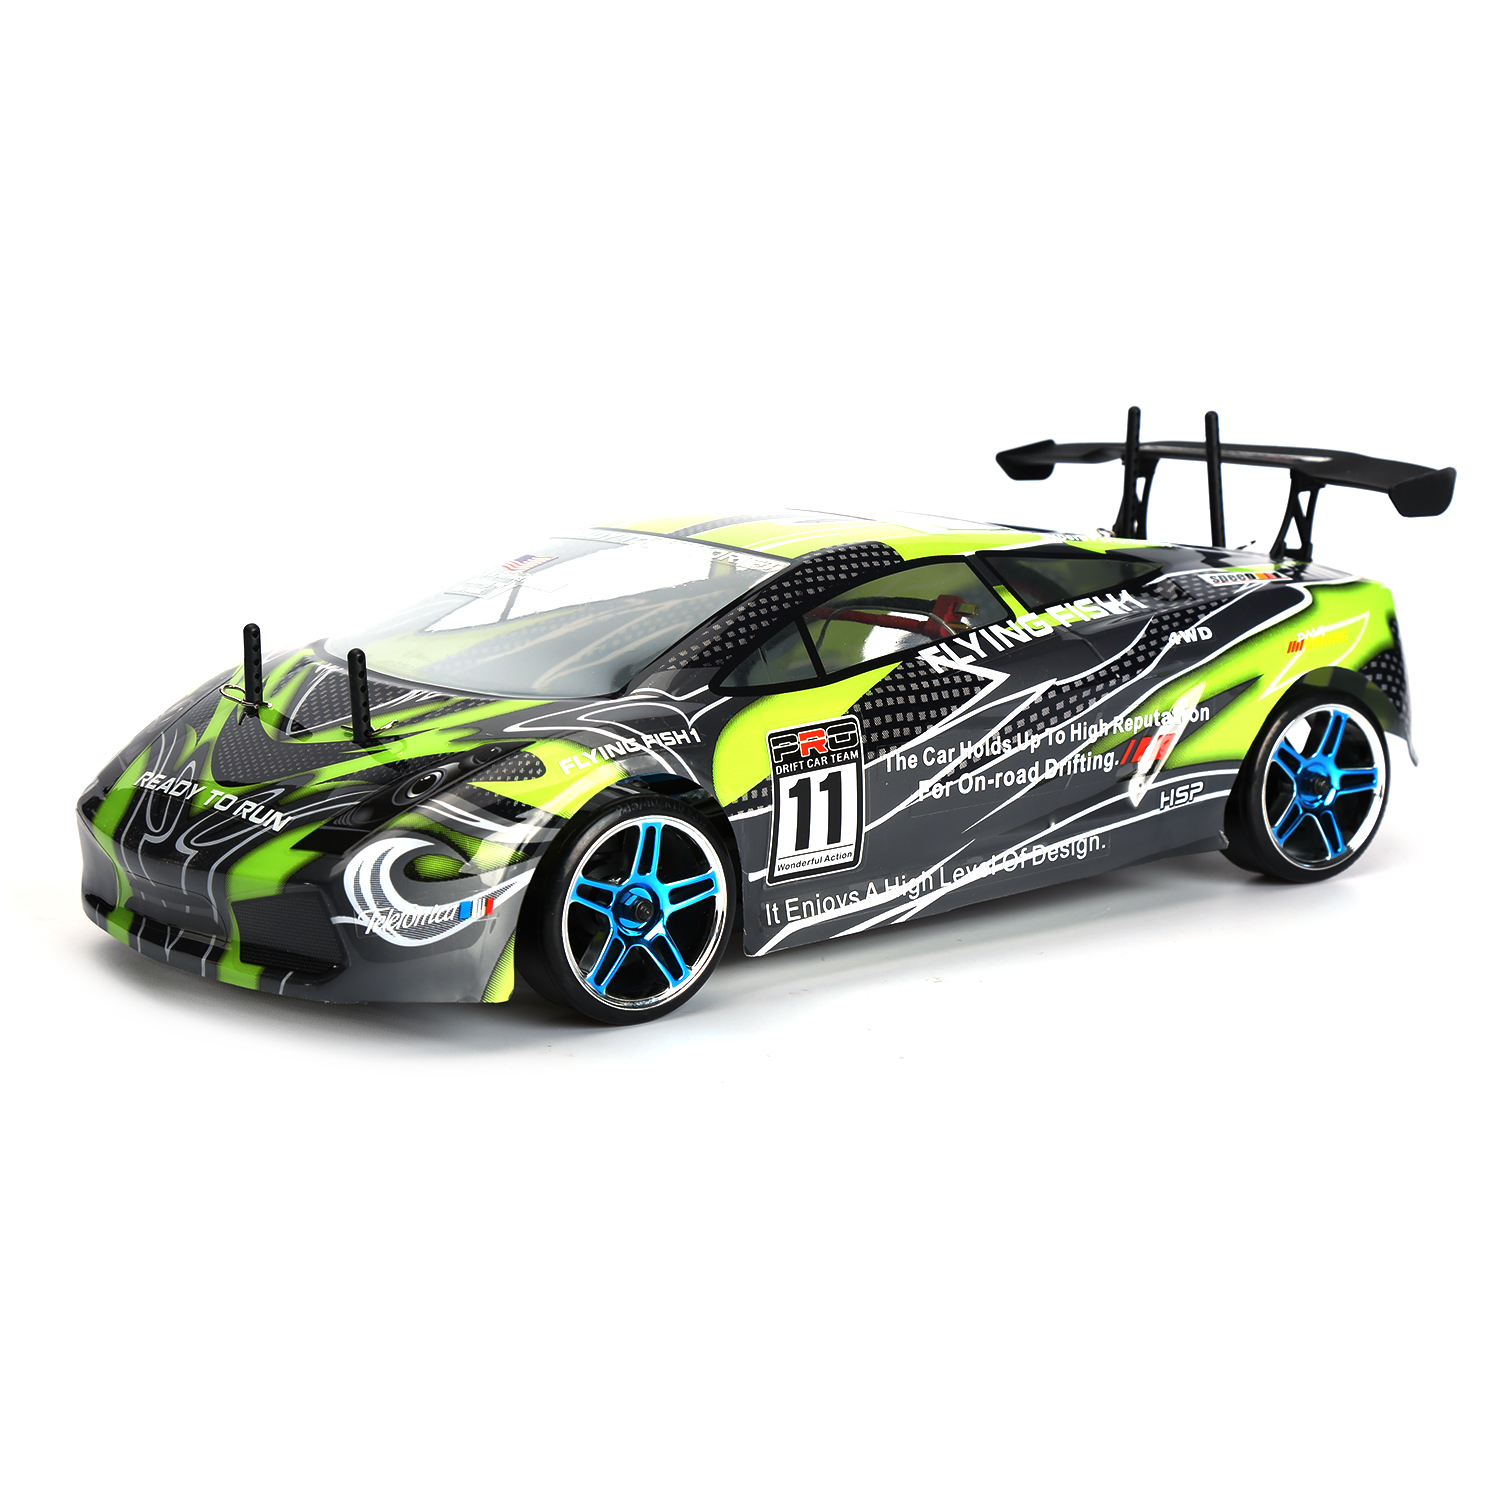 Hsp Rc Drift Car 4wd 1 10 Scale Electric On Road Drift